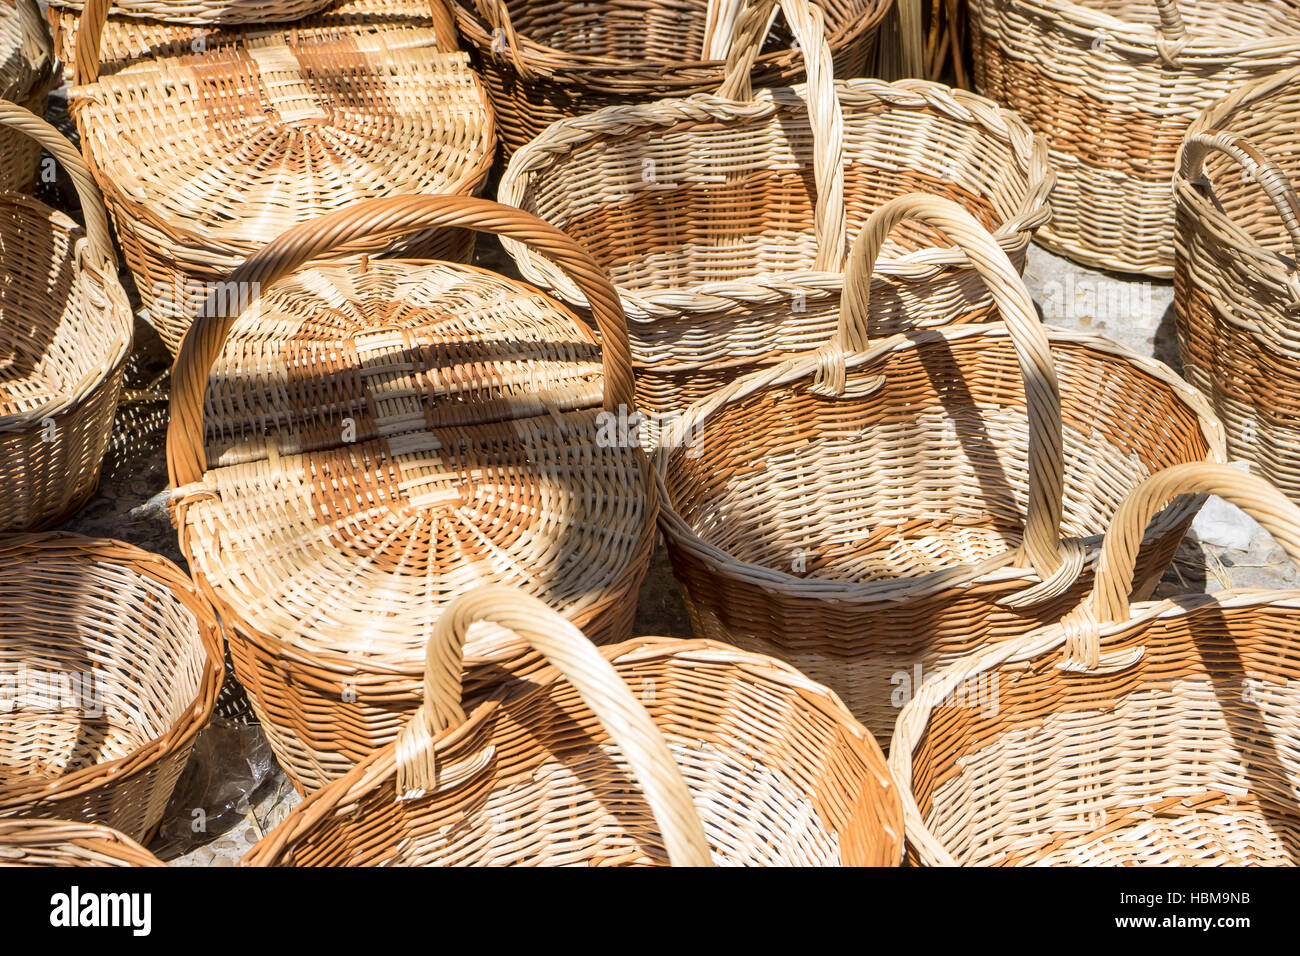 Wicker Baskets Crafts Shop Stock Photos & Wicker Baskets Crafts Shop ...